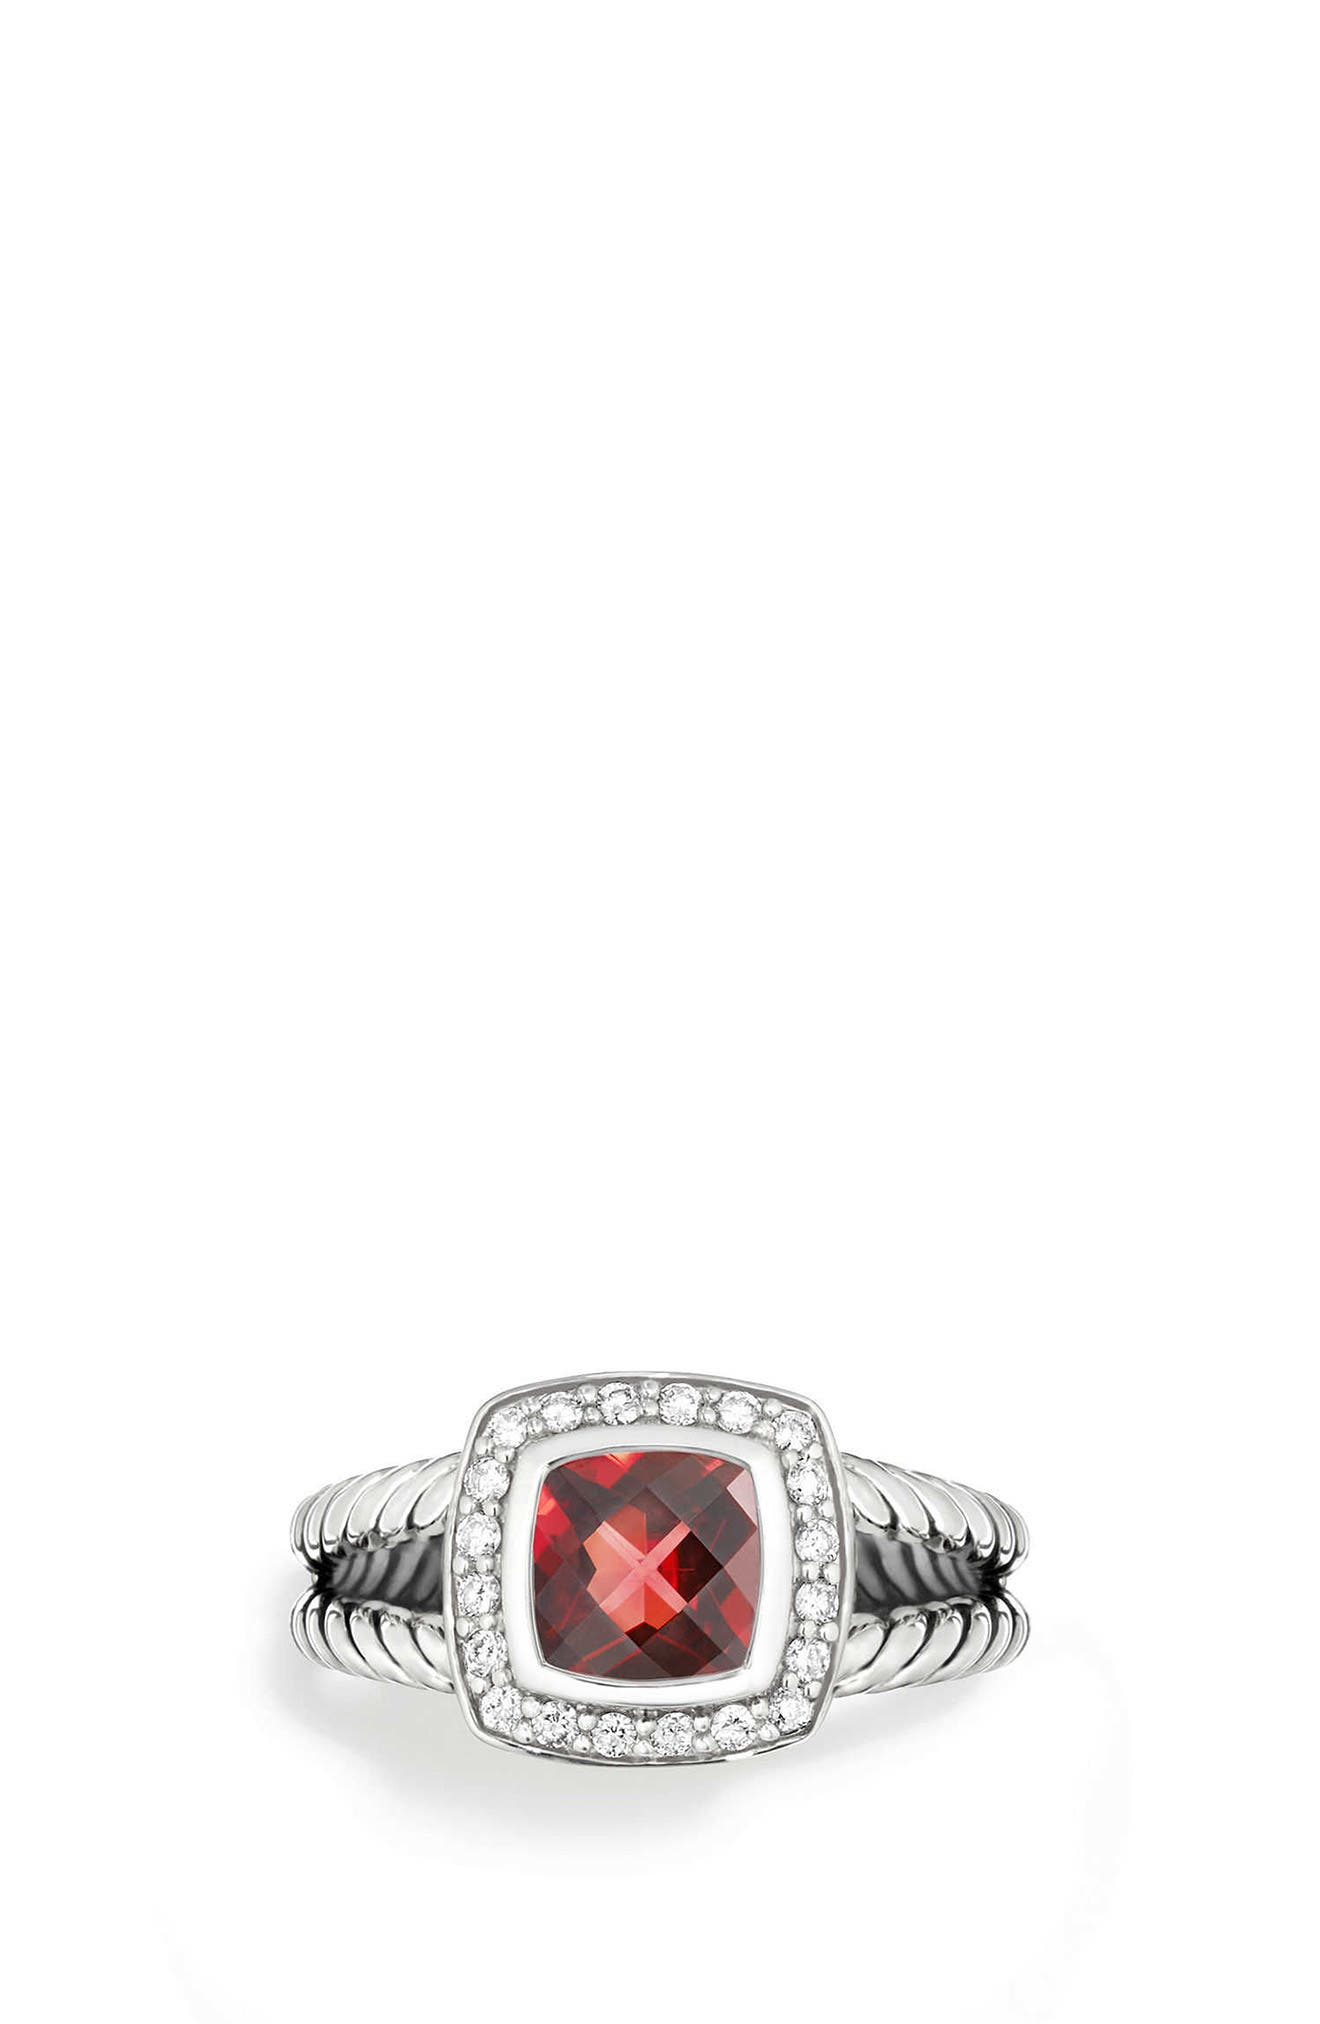 Petite Albion<sup>®</sup> Ring with Diamonds,                         Main,                         color, SILVER/ DIAMOND/ GARNET